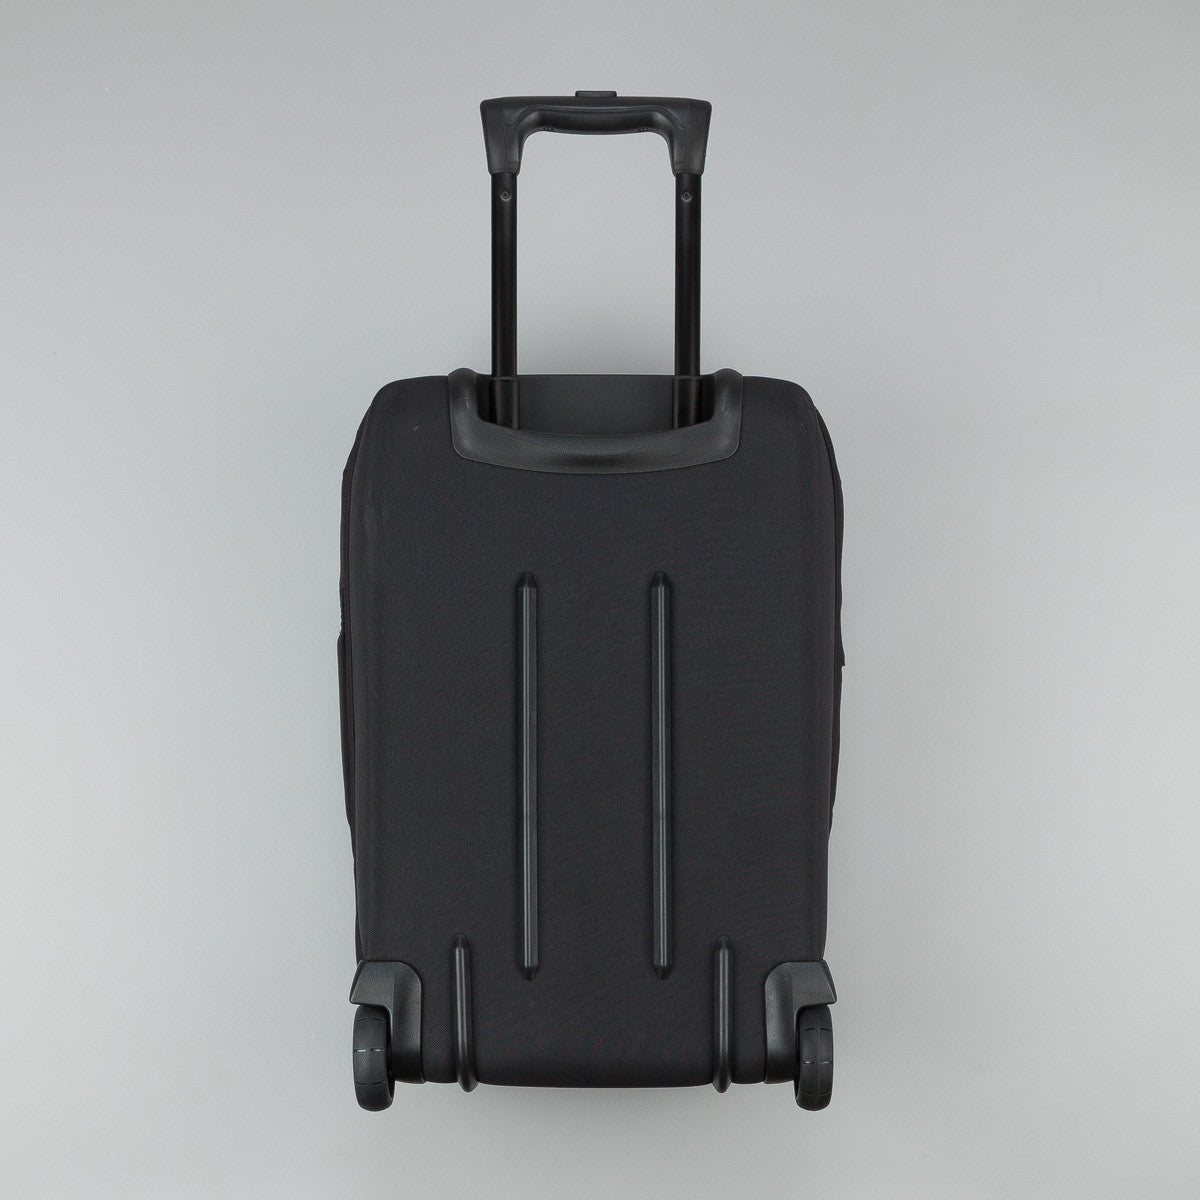 Patagonia Transport Roller Bag 35L - Black